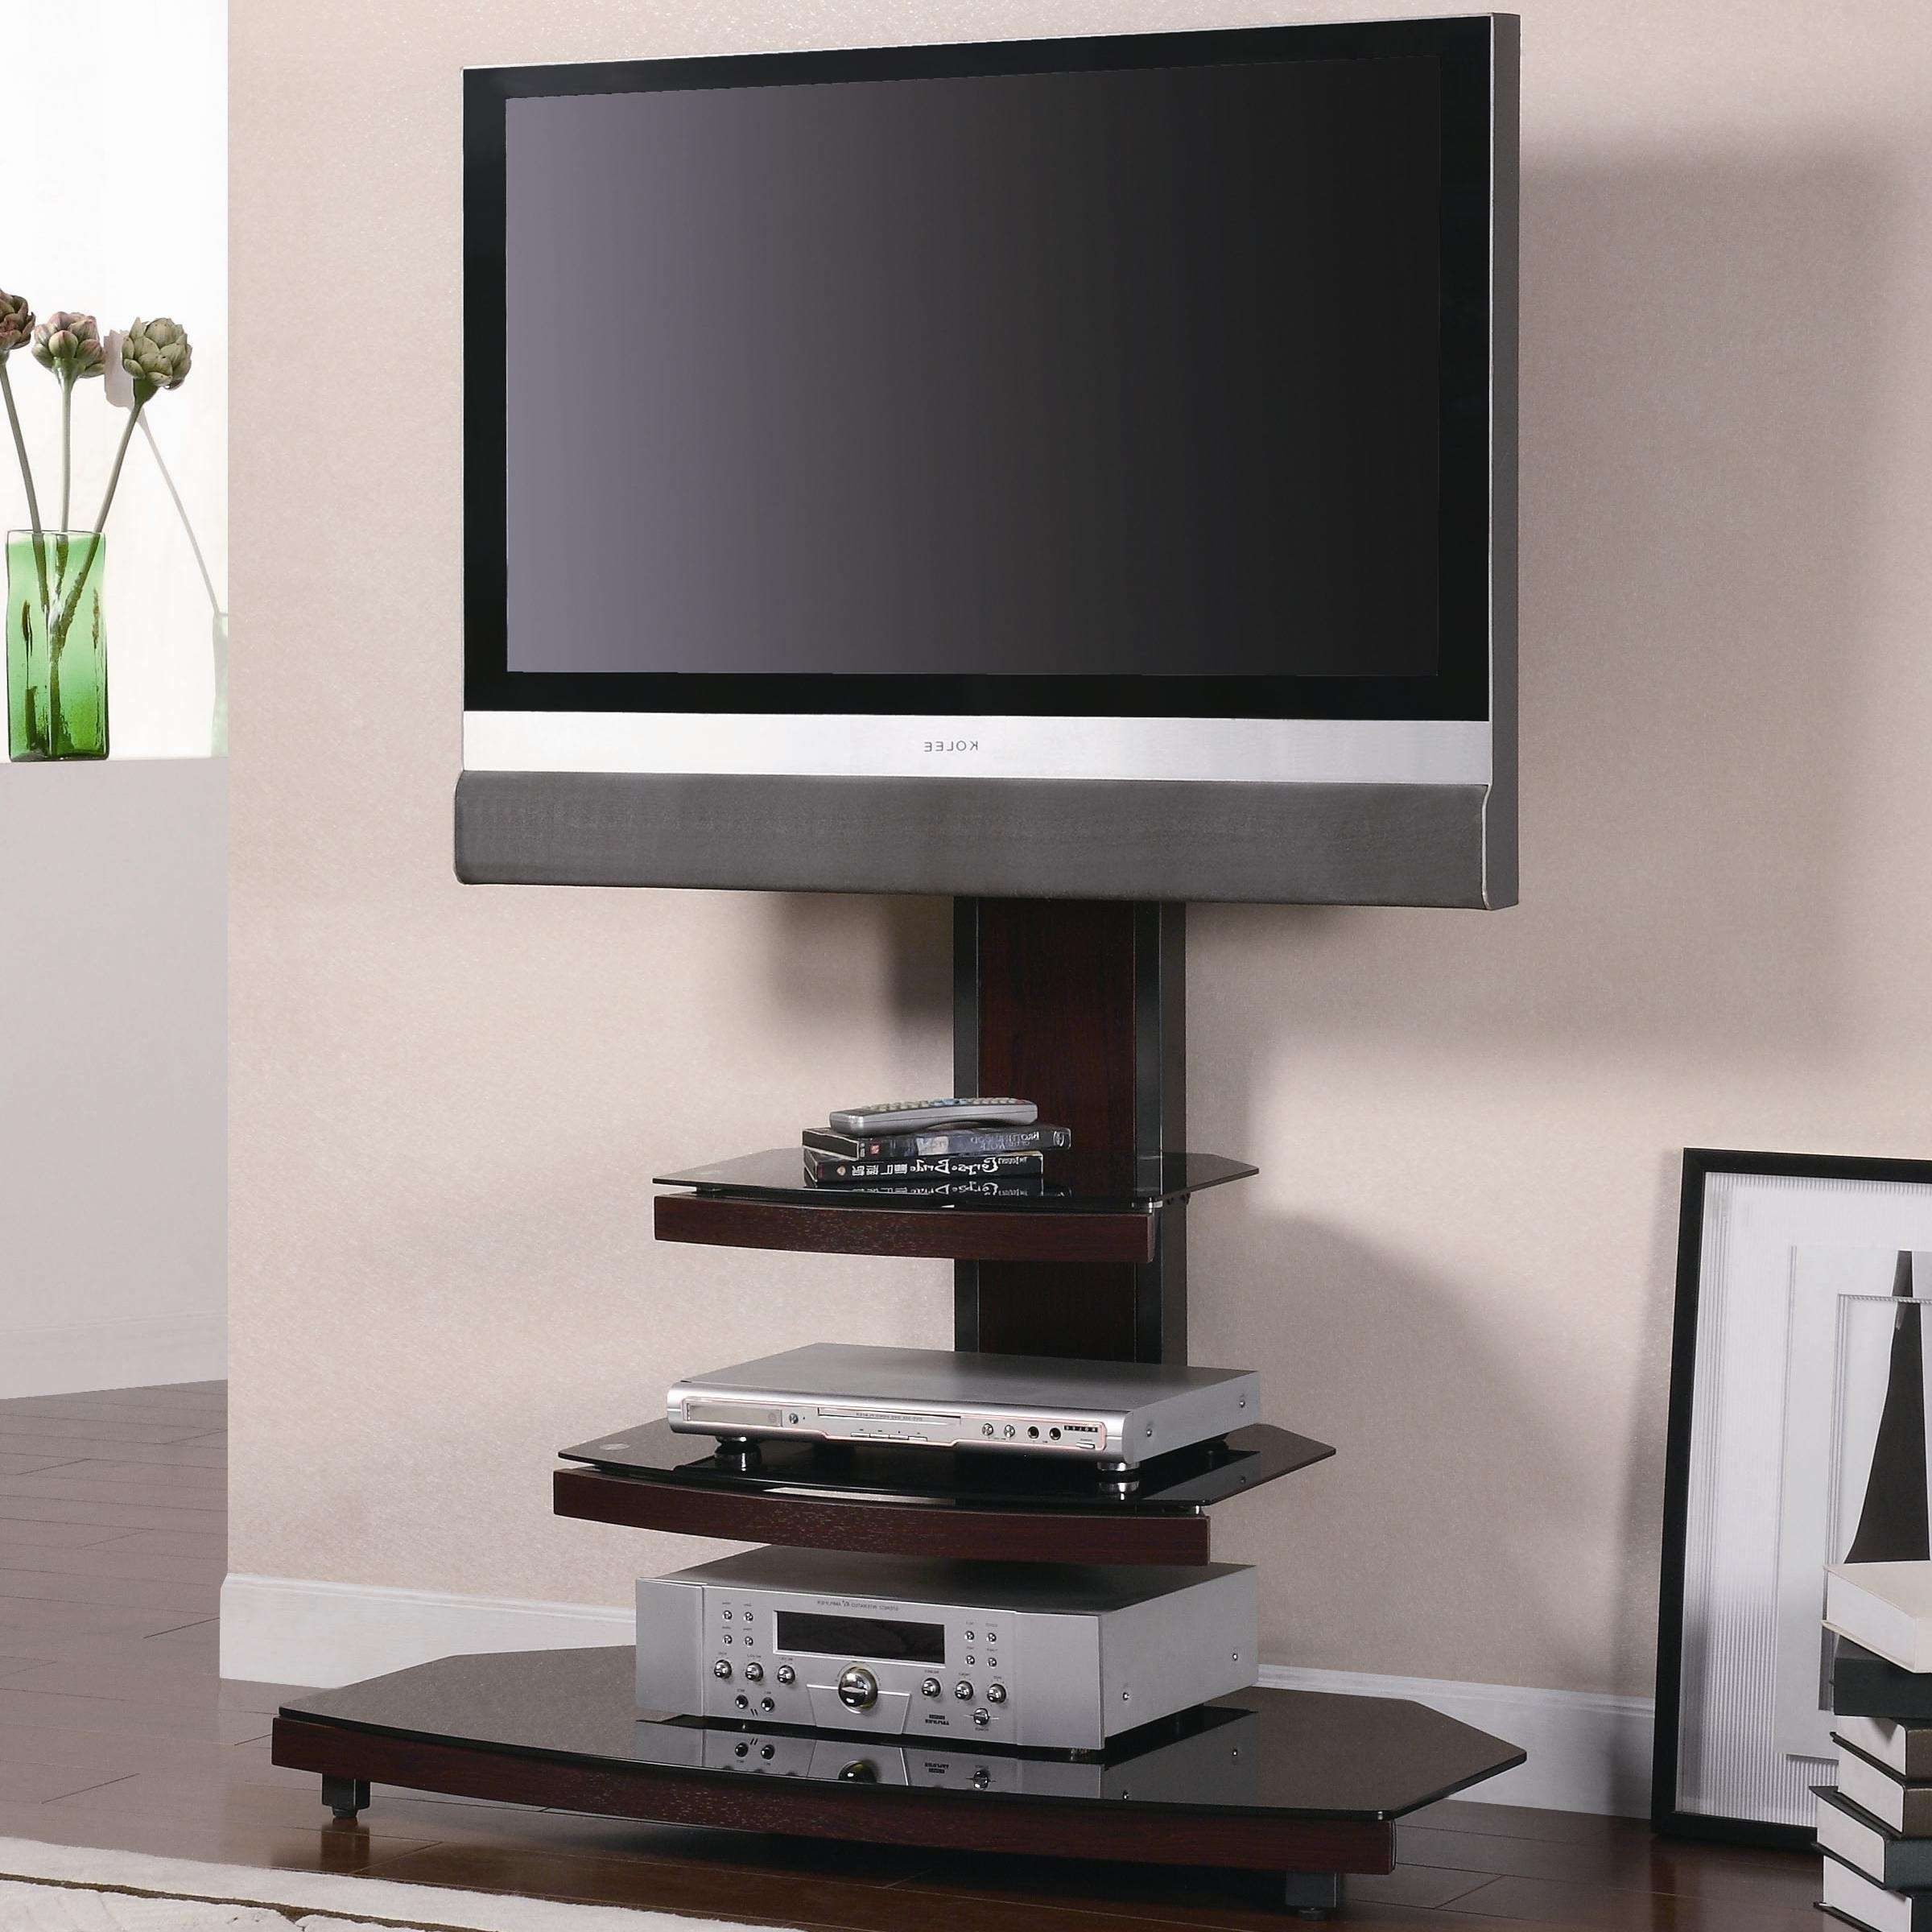 Sense Of Style Tv Stands – Home Decorating Designs With Regard To Sleek Tv Stands (View 10 of 15)